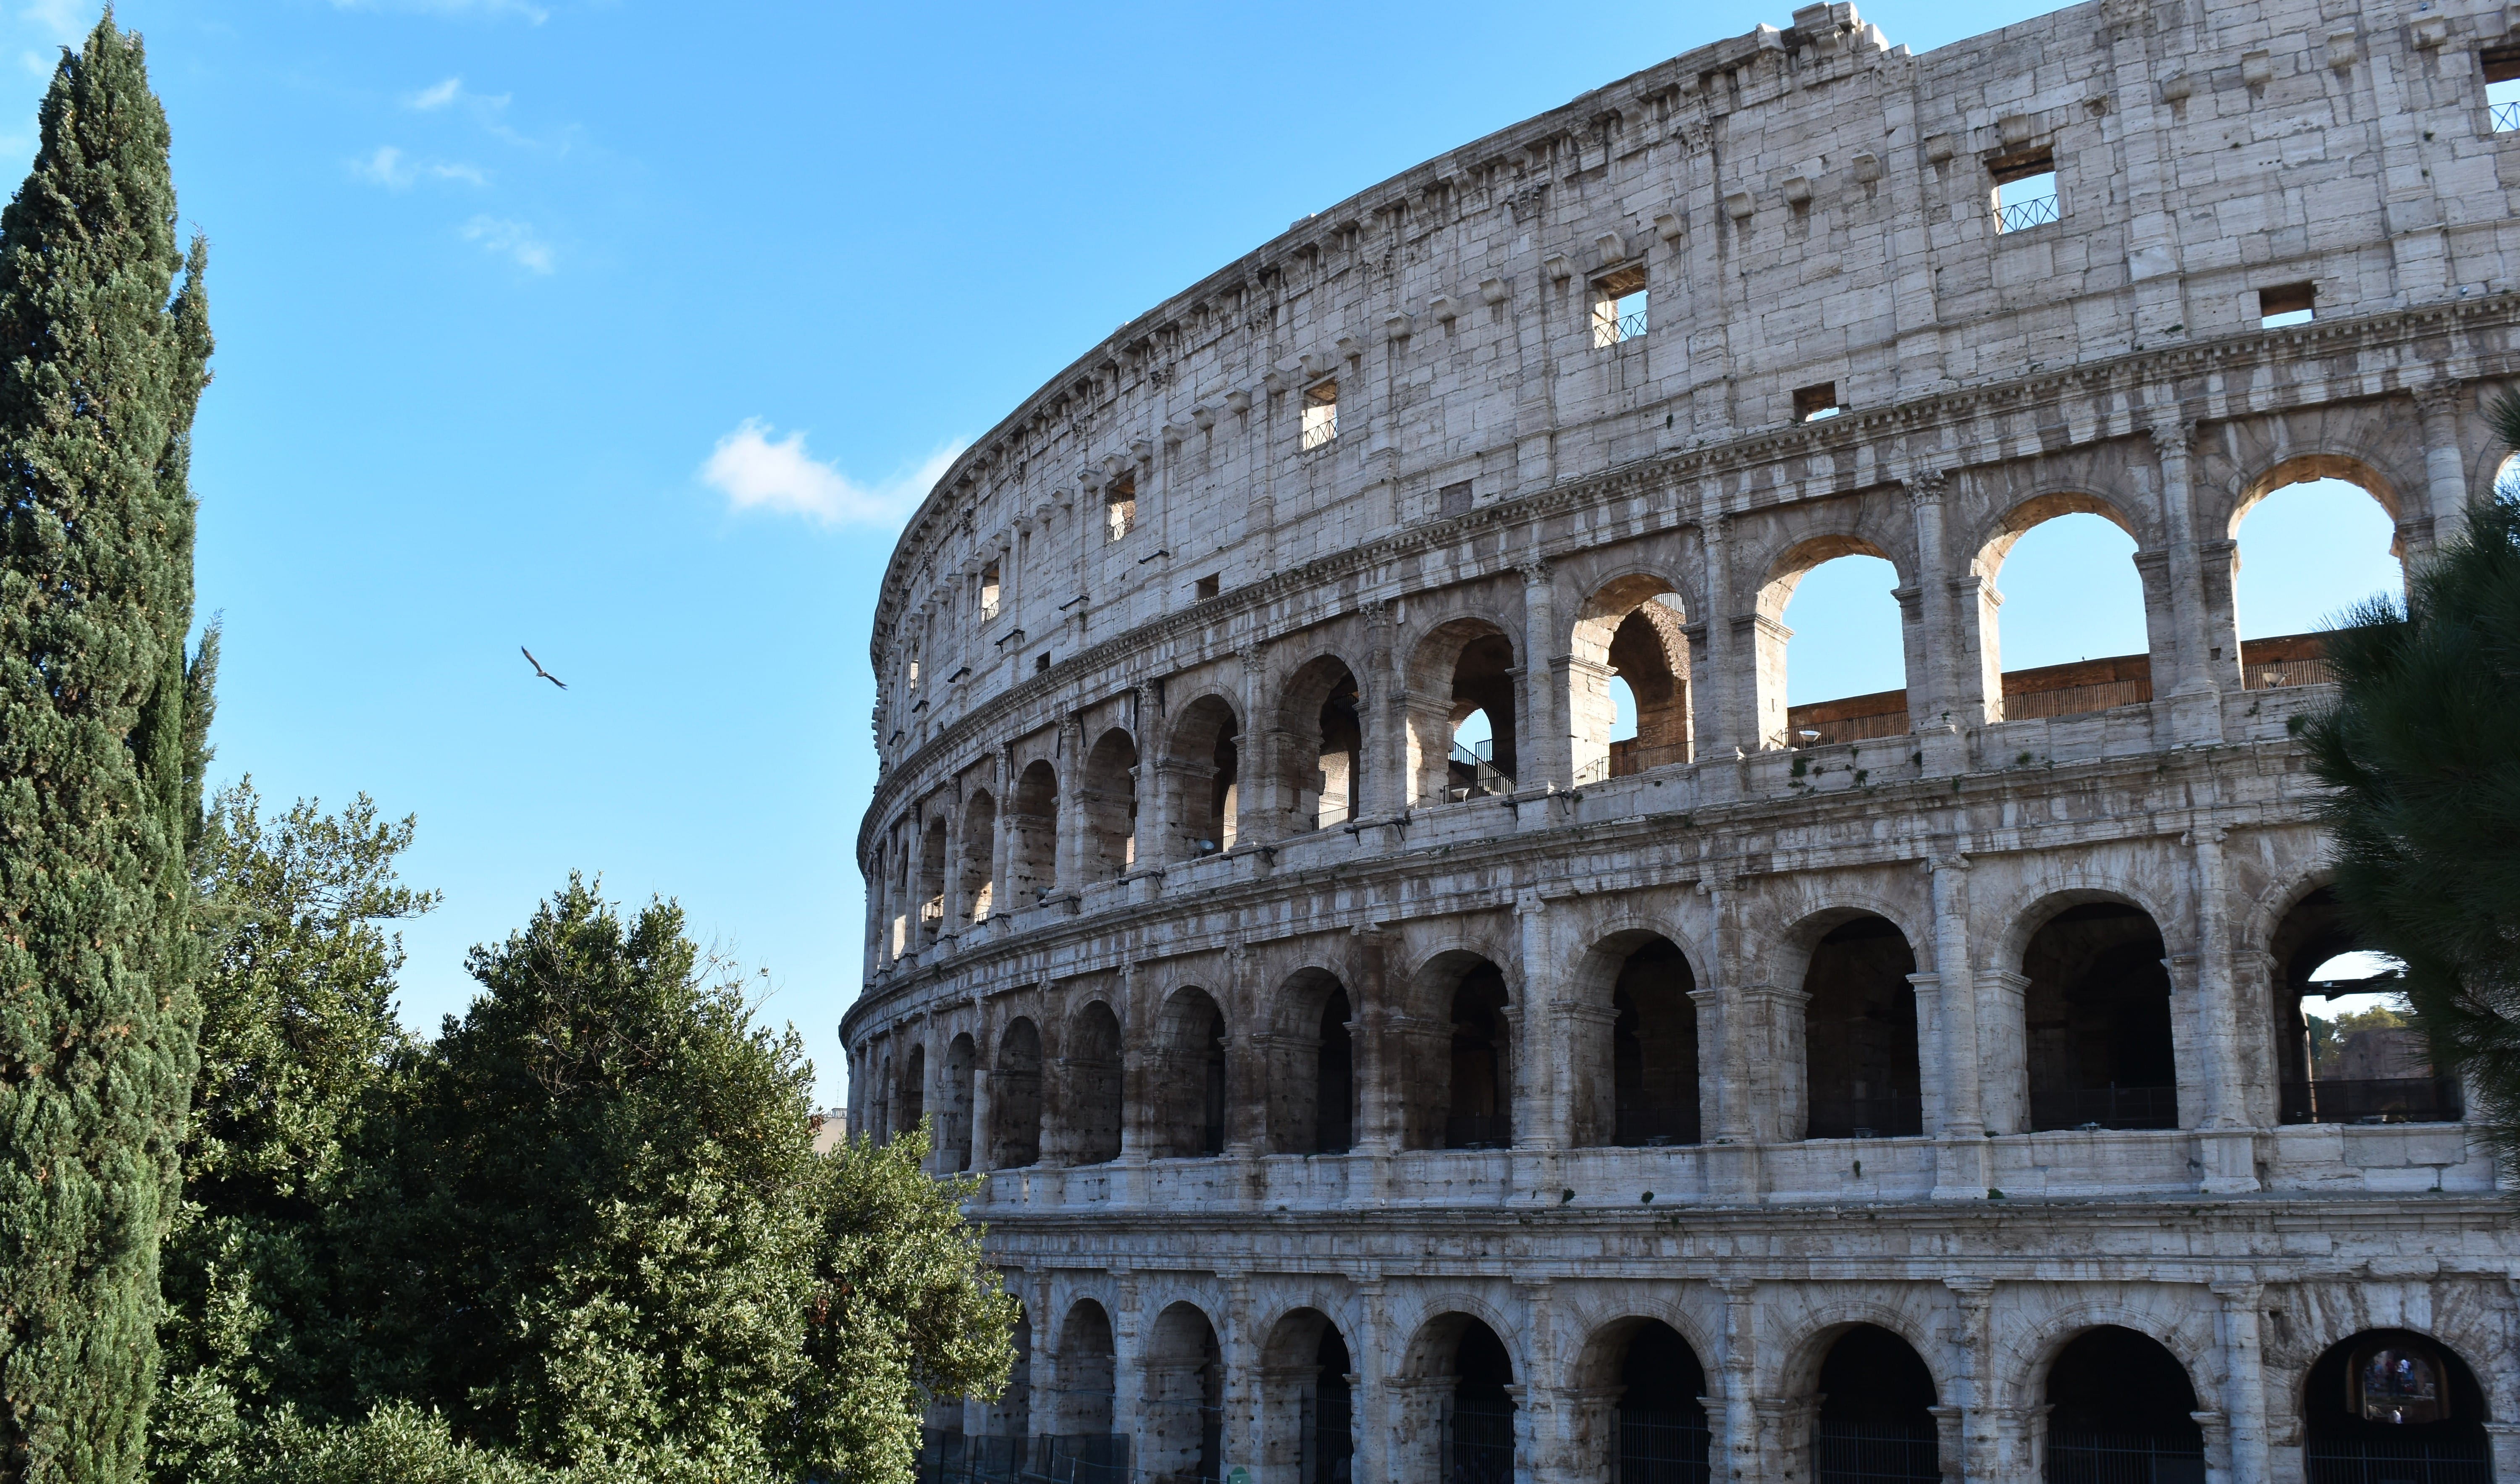 My Top Places To See in Rome